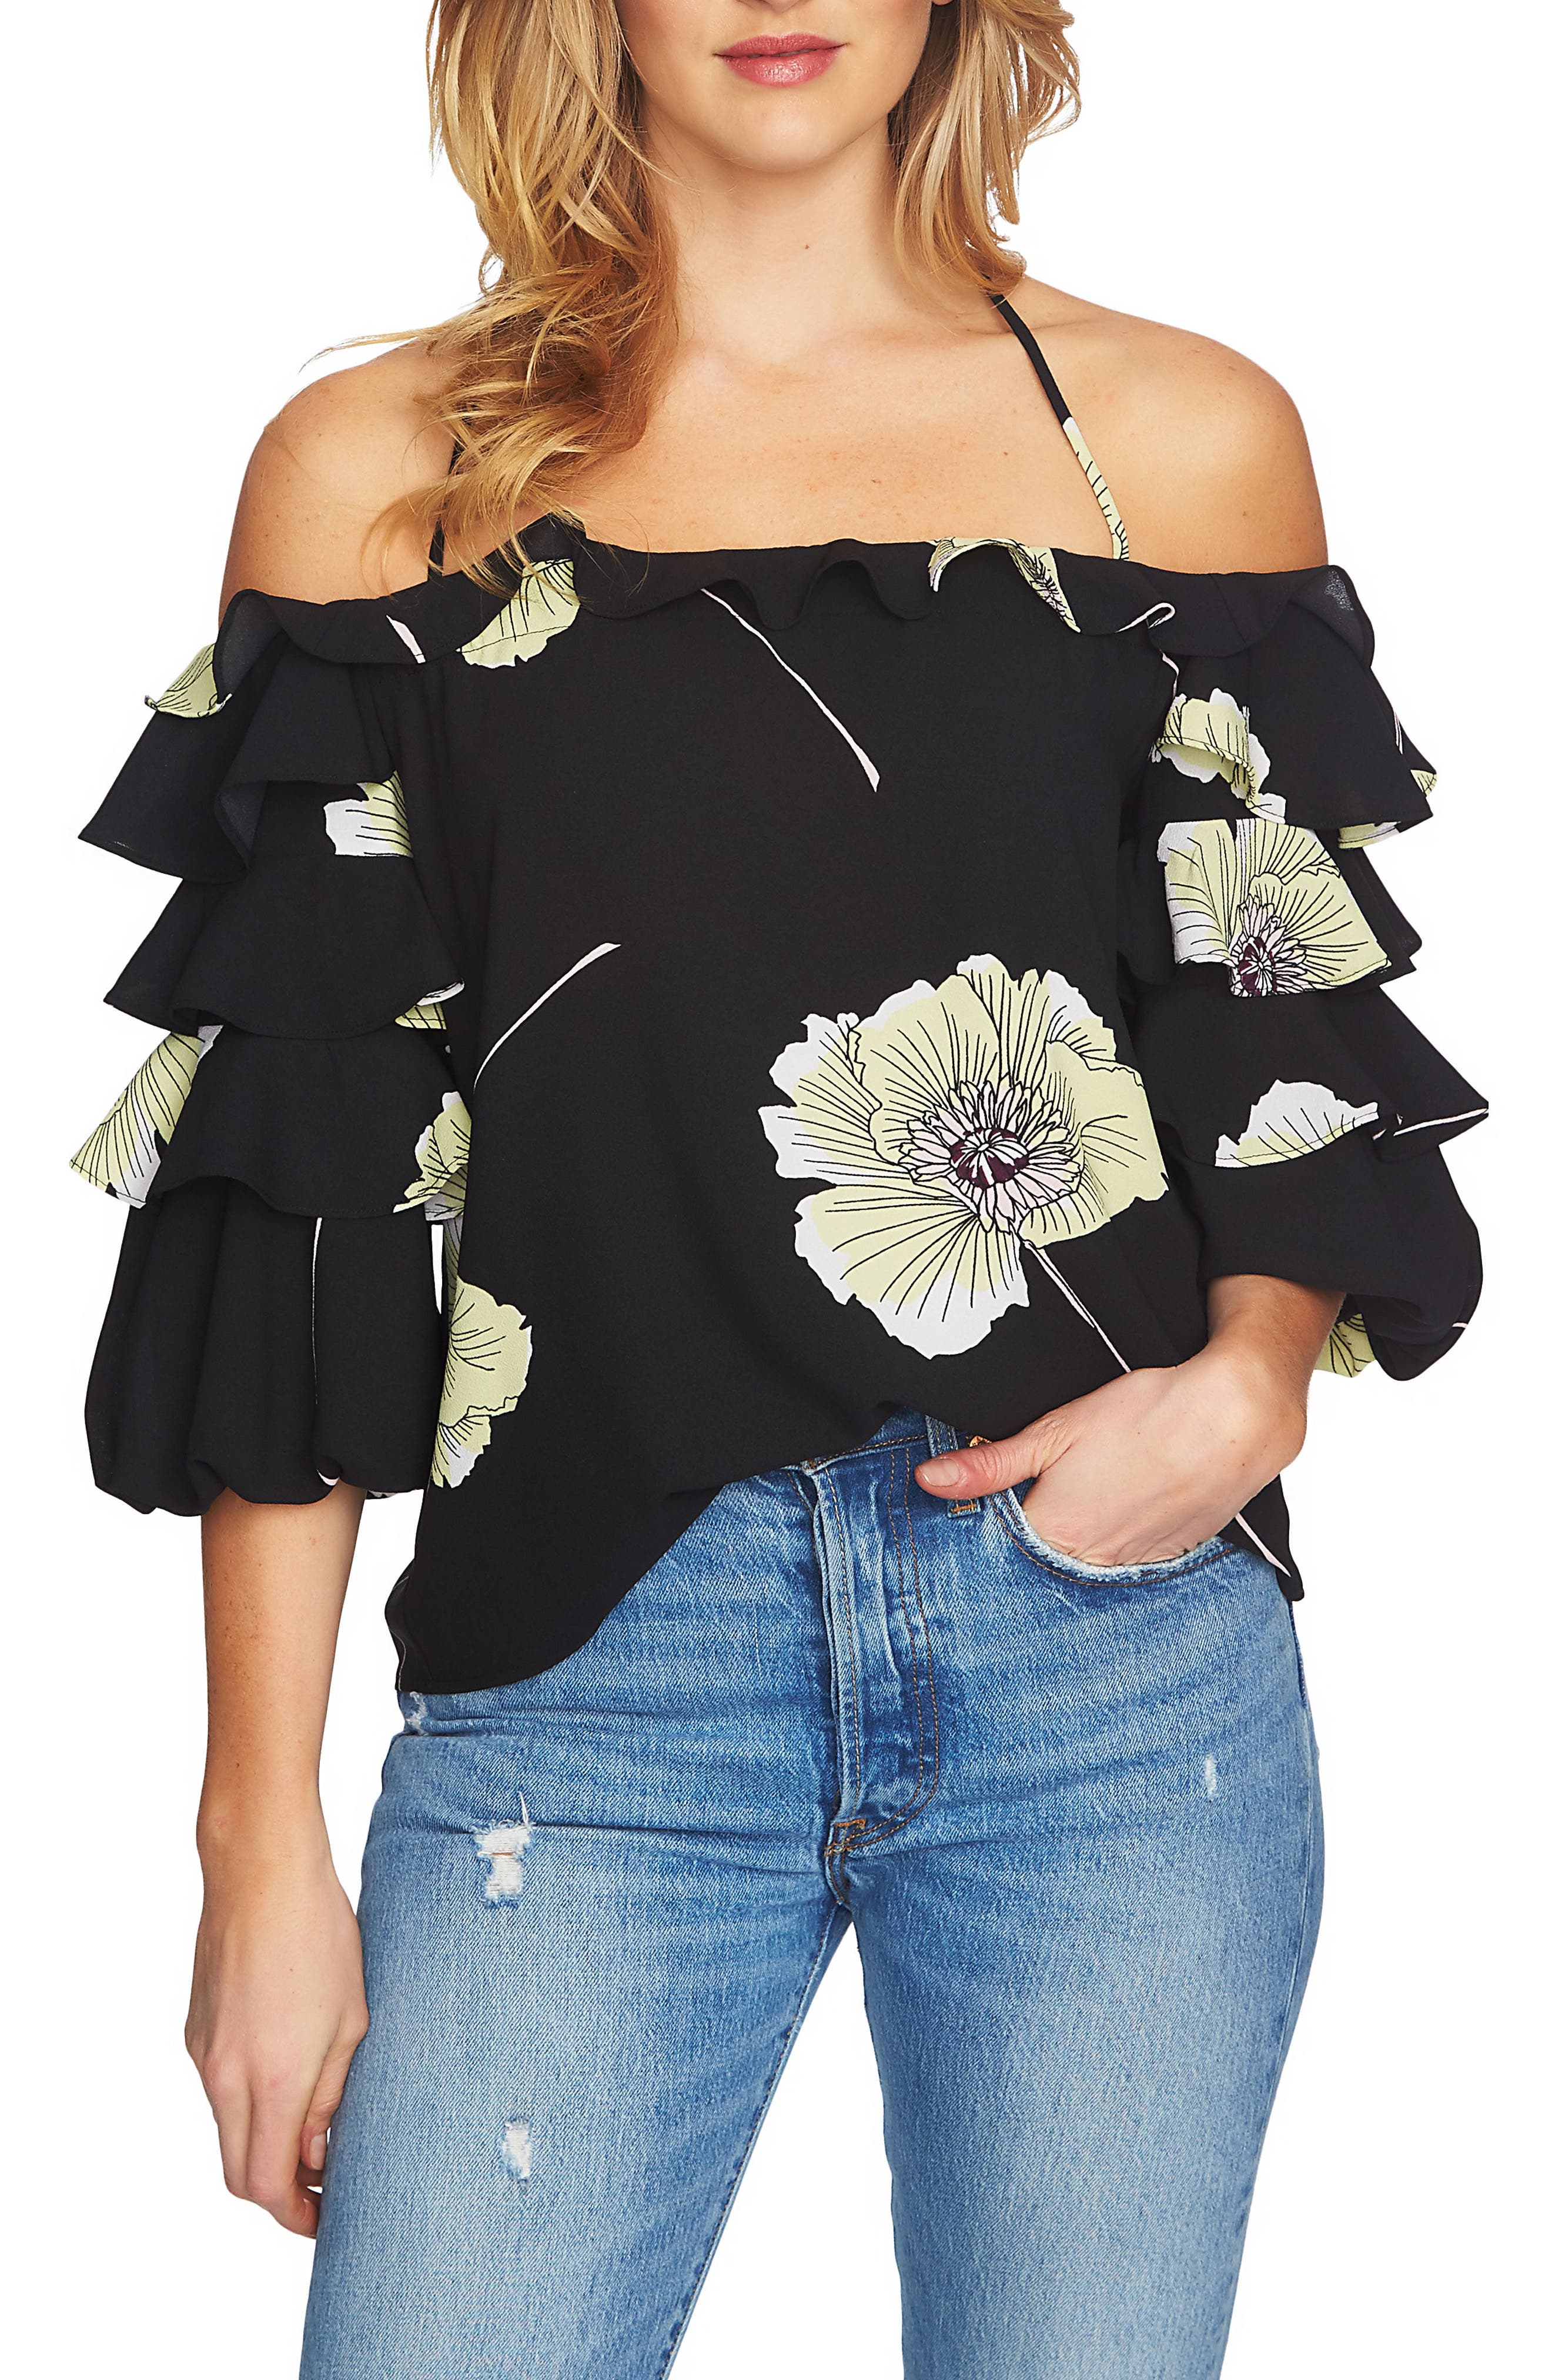 Tiered Sleeve Off the Shoulder Top,                             Main thumbnail 1, color,                             060-Rich Black